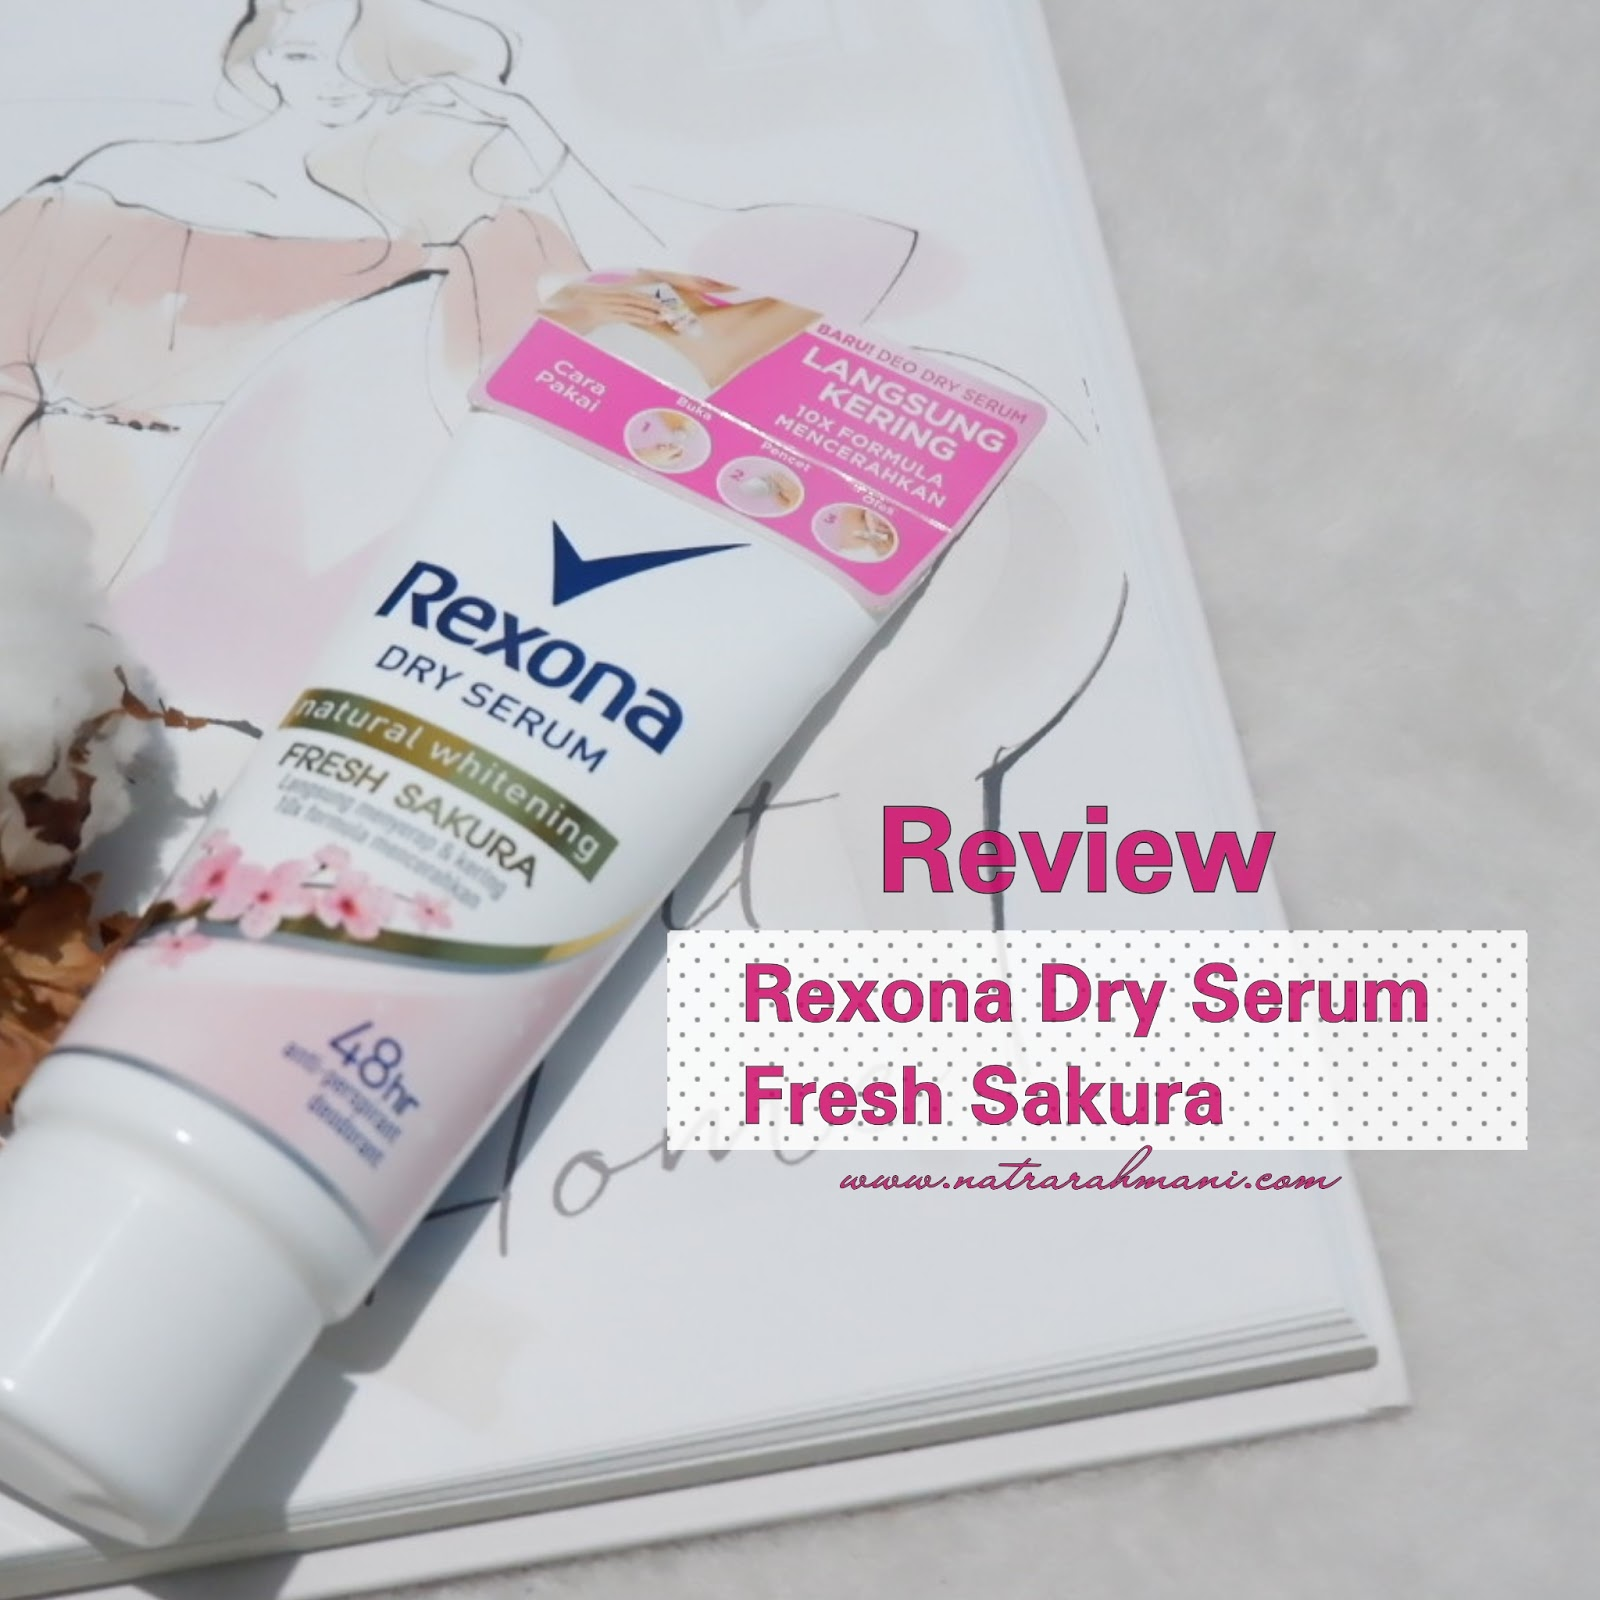 review-rexona-dry-serum-fresh-sakura-natrarahmani